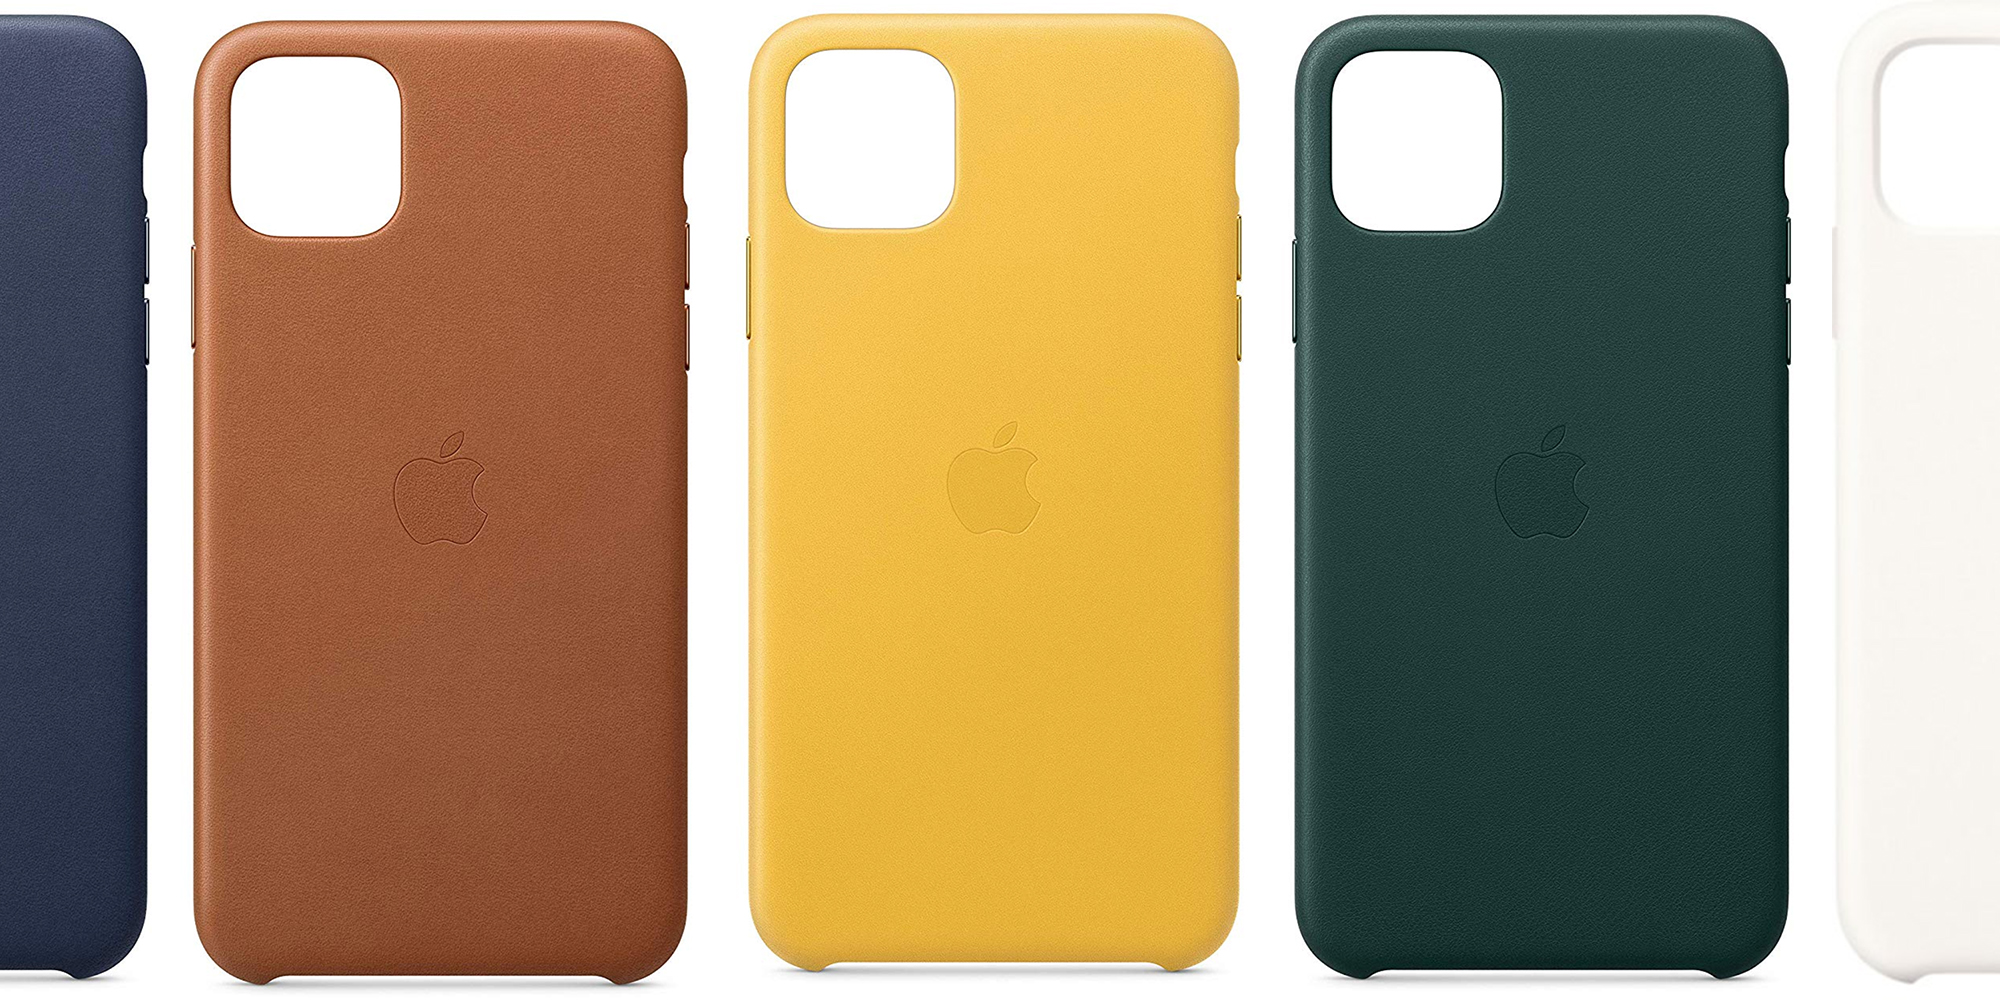 Apple's official iPhone 11 and Pro/Max cases on sale from $24 (Reg. up to $49)